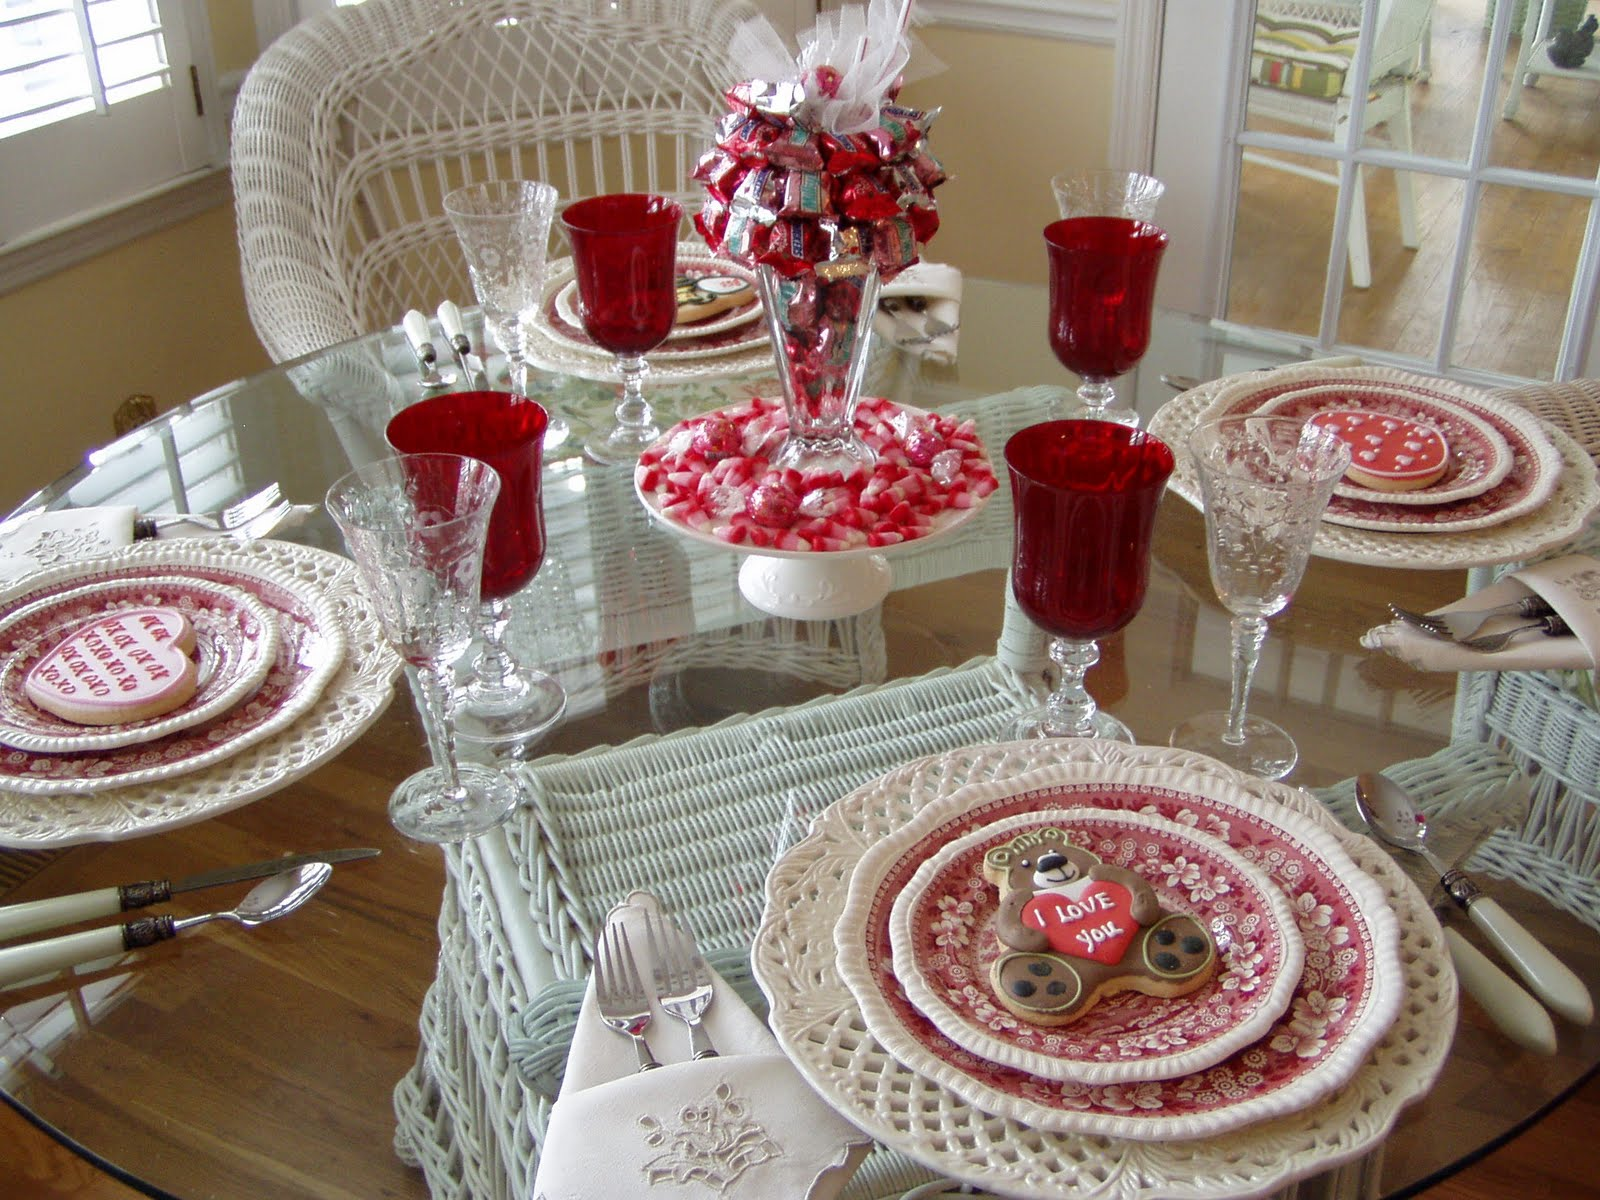 A Valentines Day Tablescape Table Setting With DIY Candy